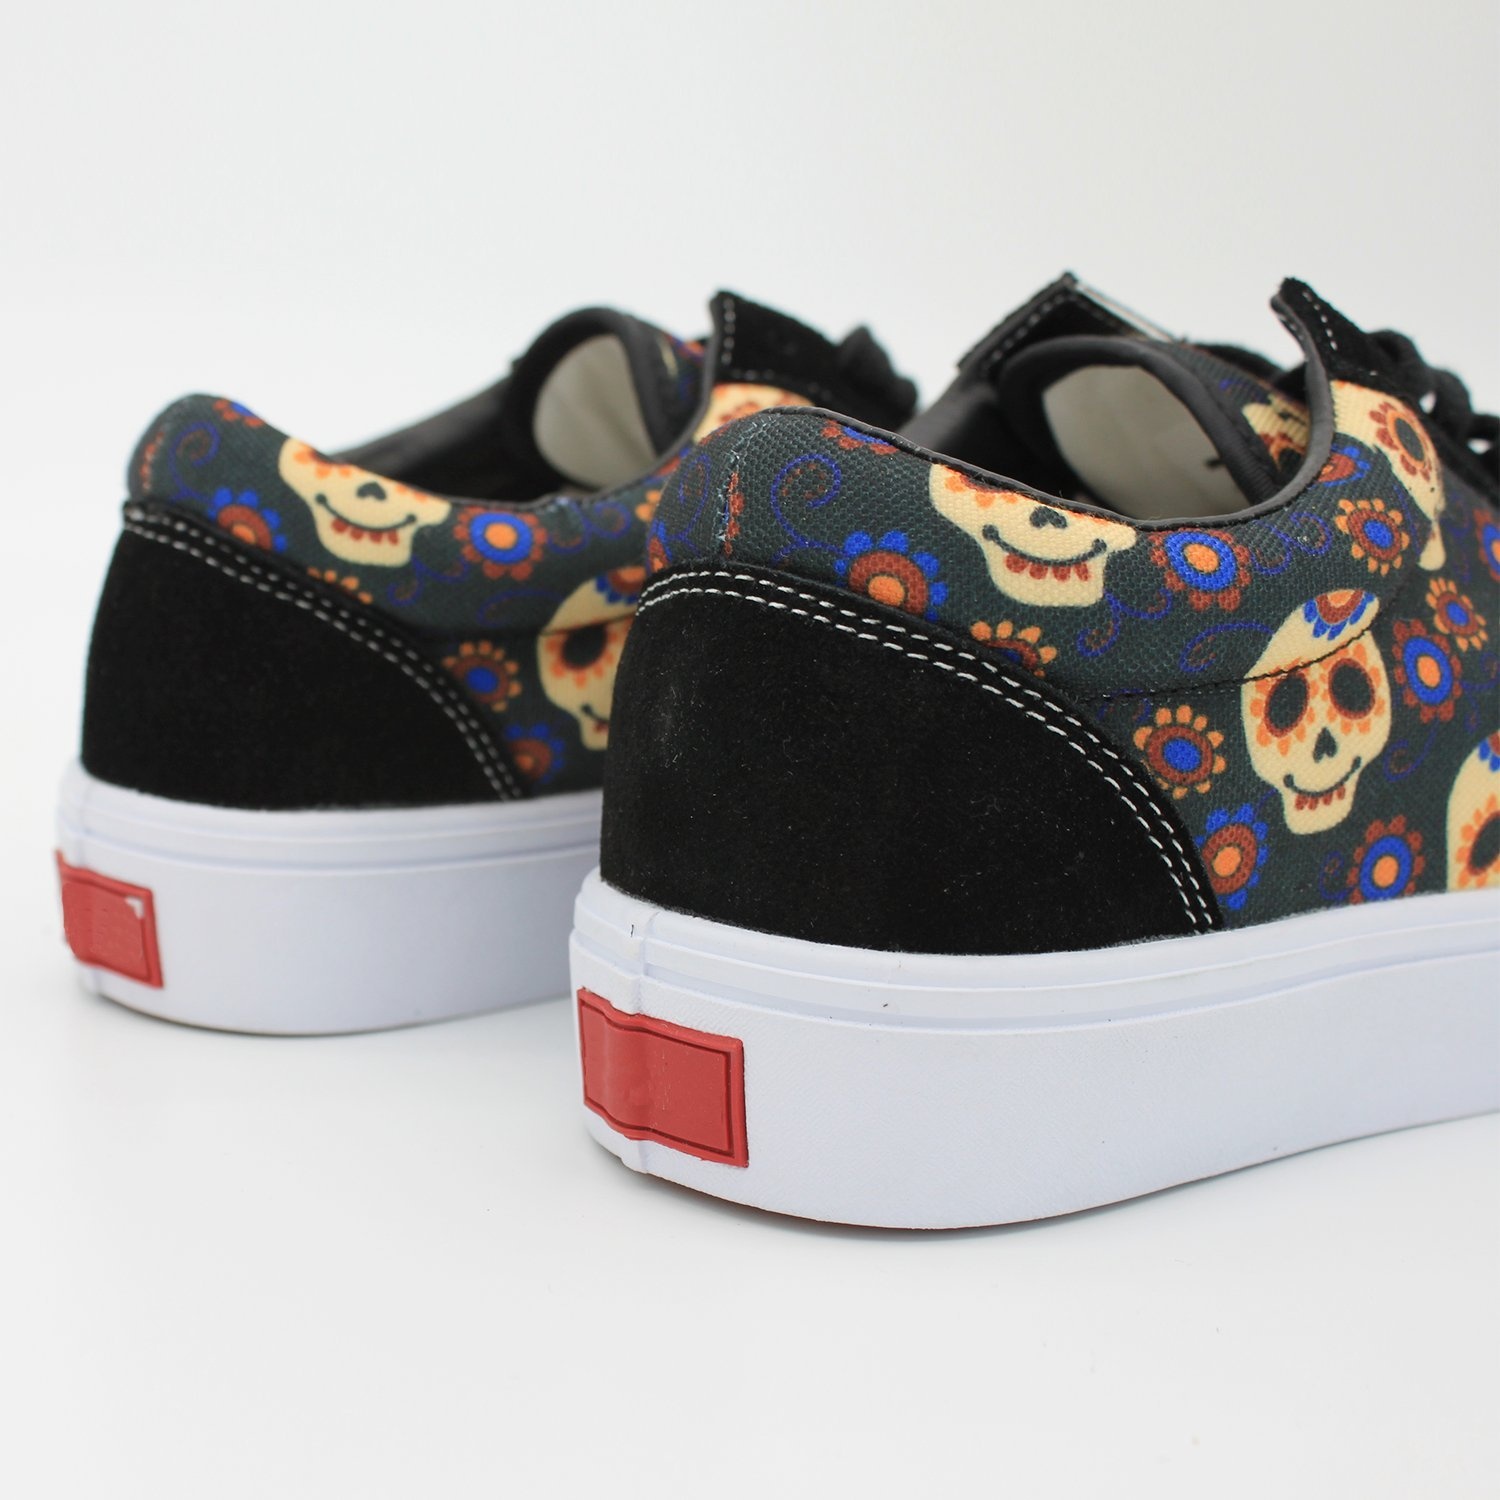 799004fe5366f Amazon.com | cozyshoeson Flower Skull Adults' Low-Top Trainers ...